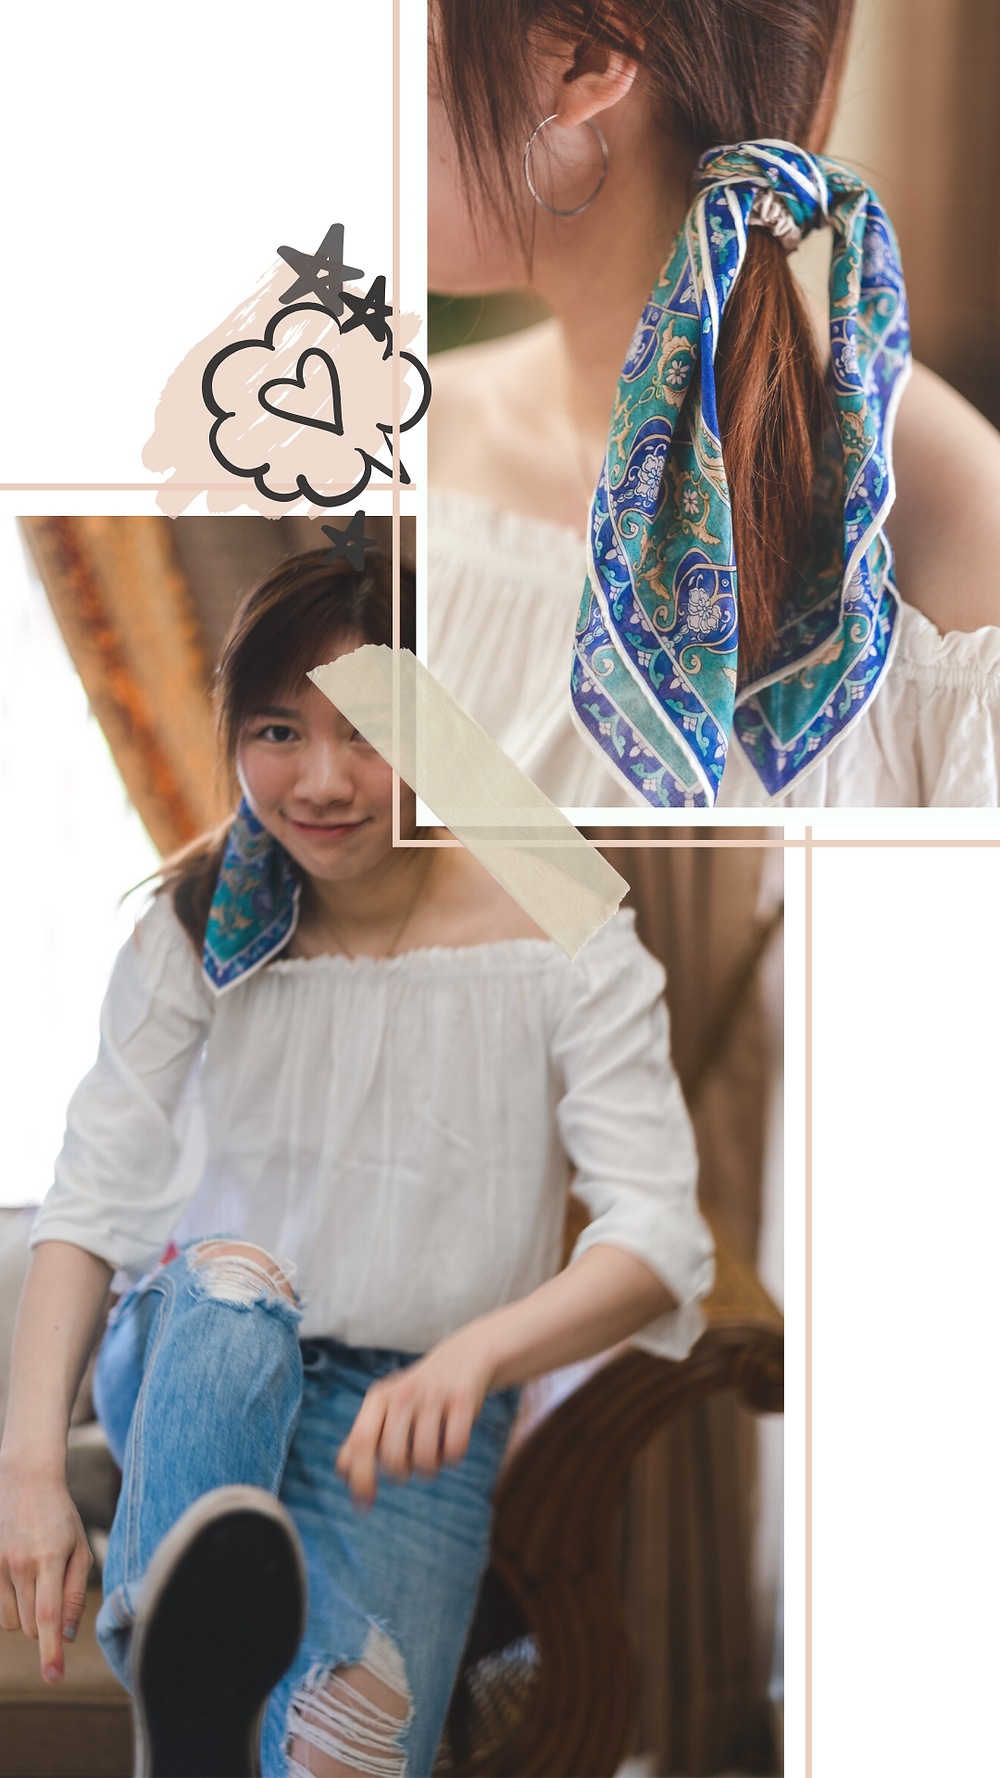 White ruffle off-shoulder top styled with blue bandana and silver hoop earrings, RollingBear Travels.